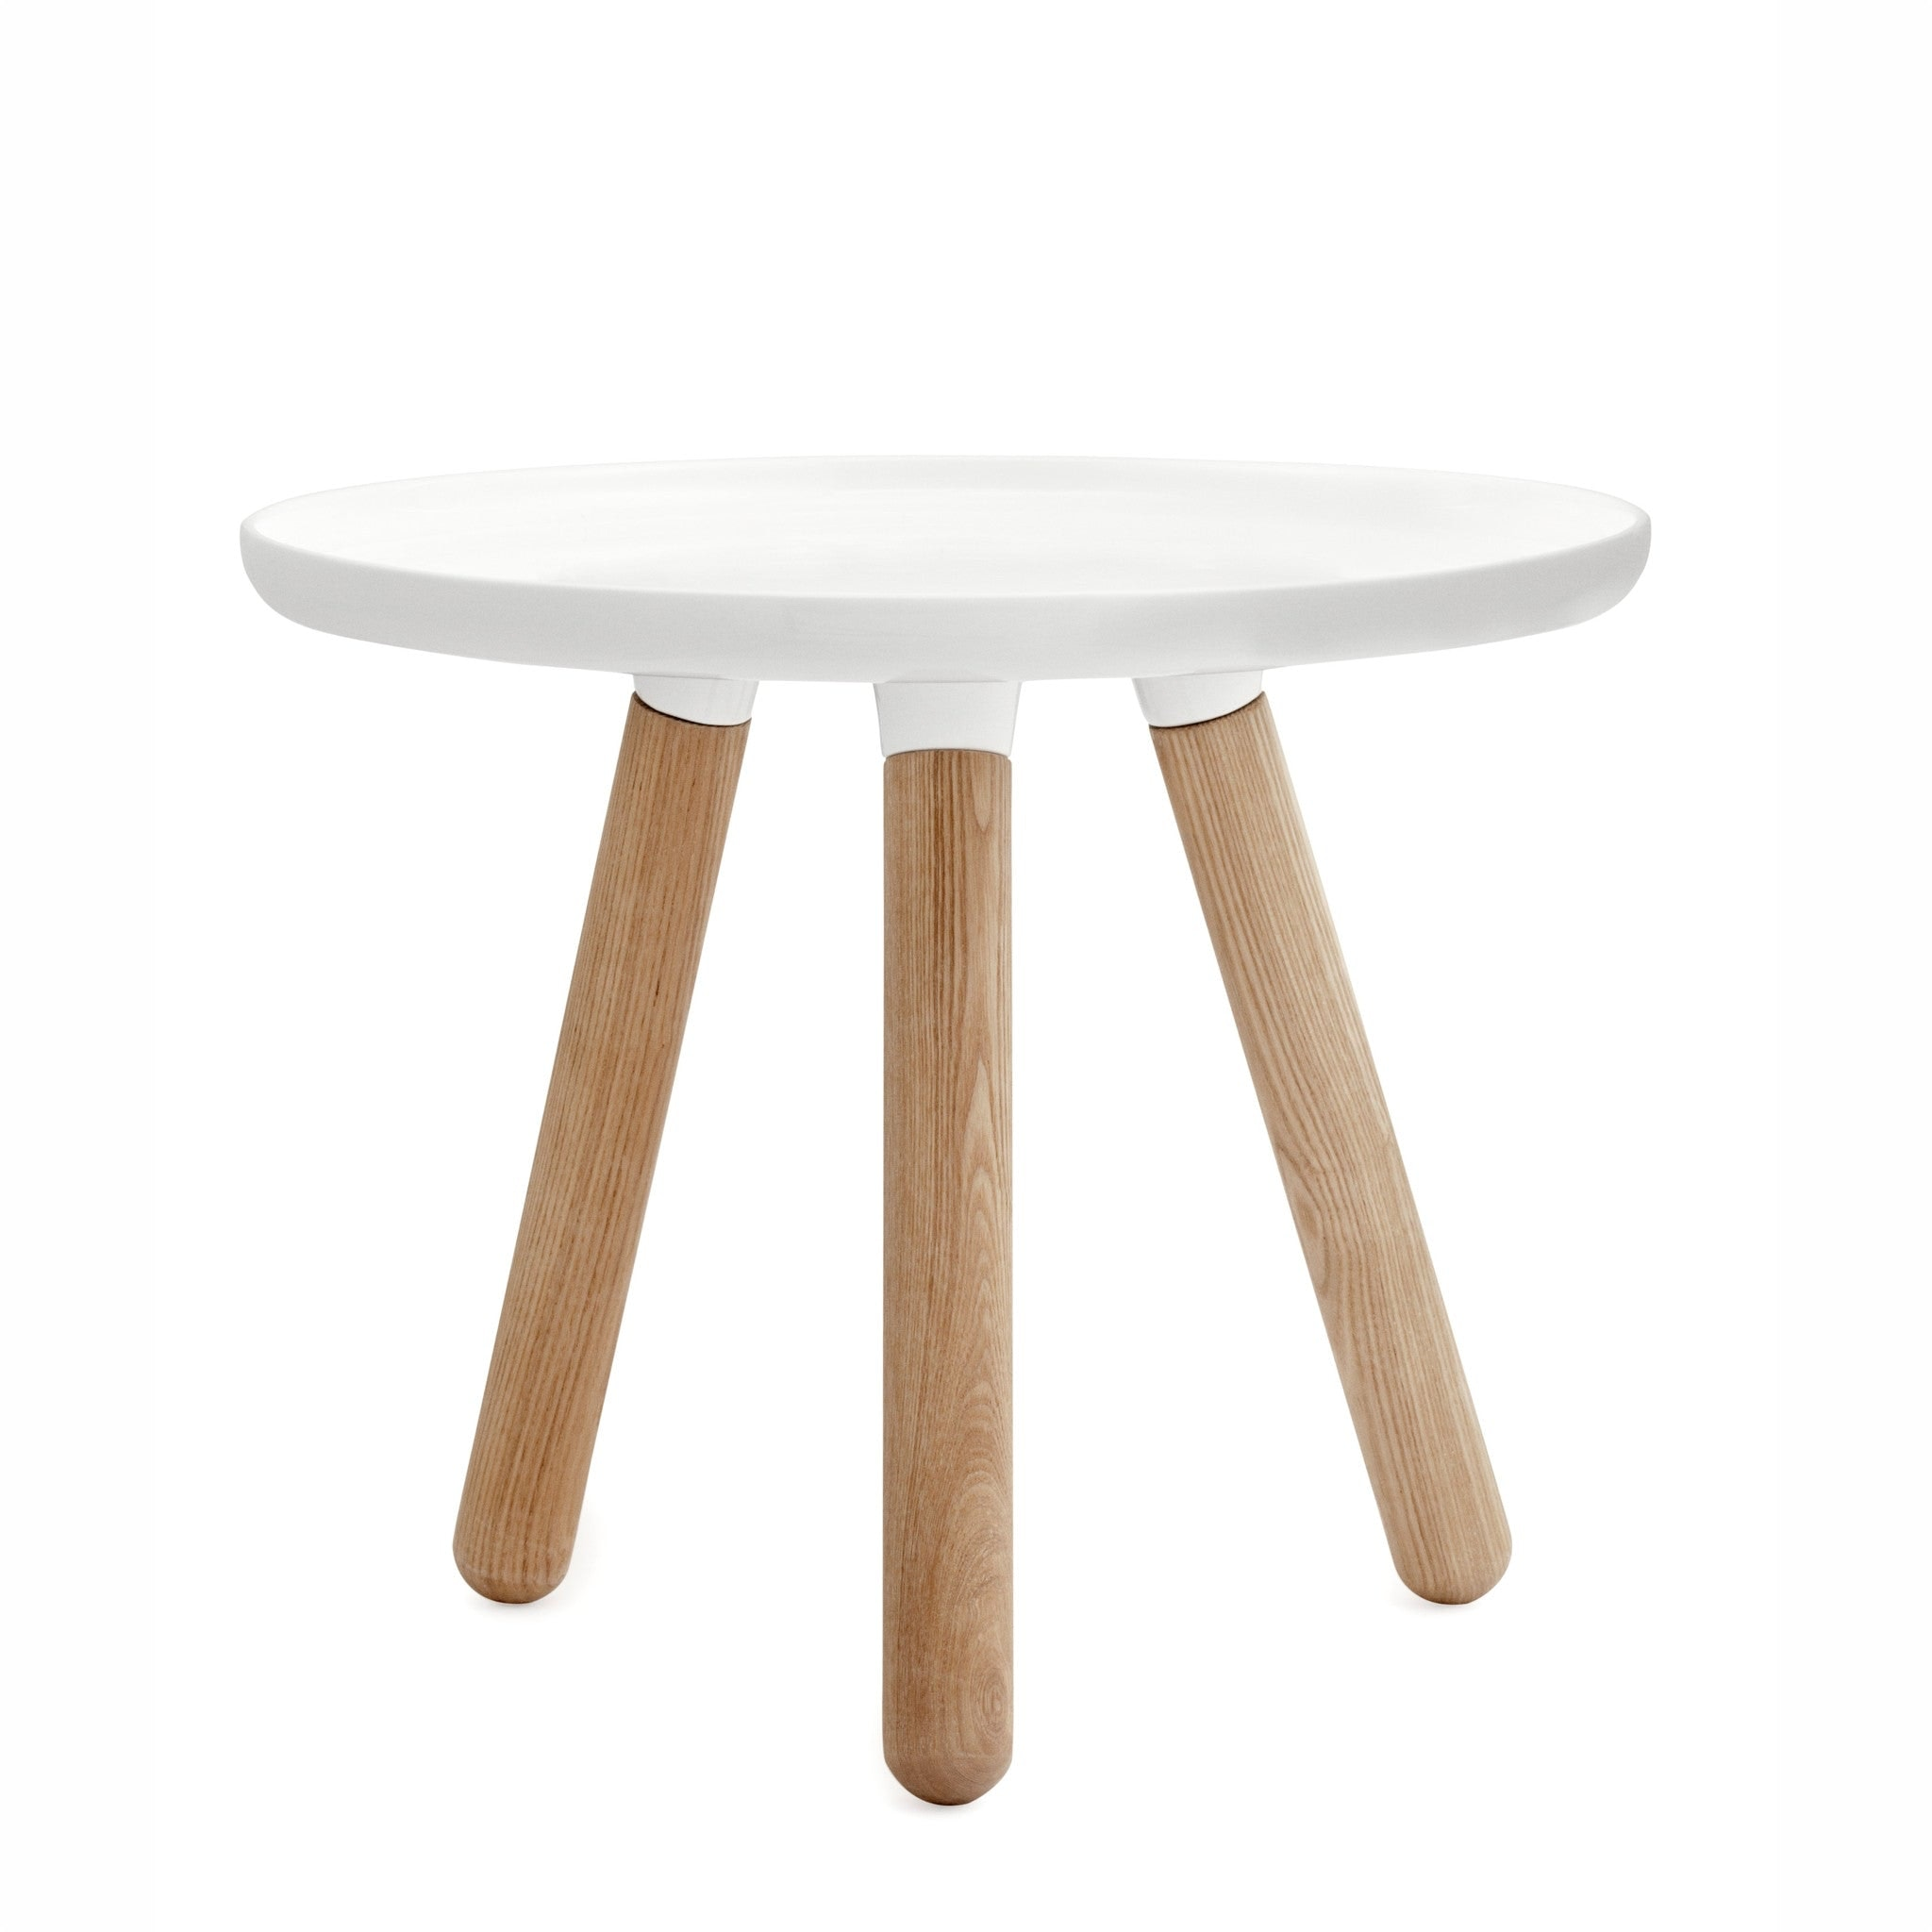 Tablo Table Round by Nicholai Wiig Hansen